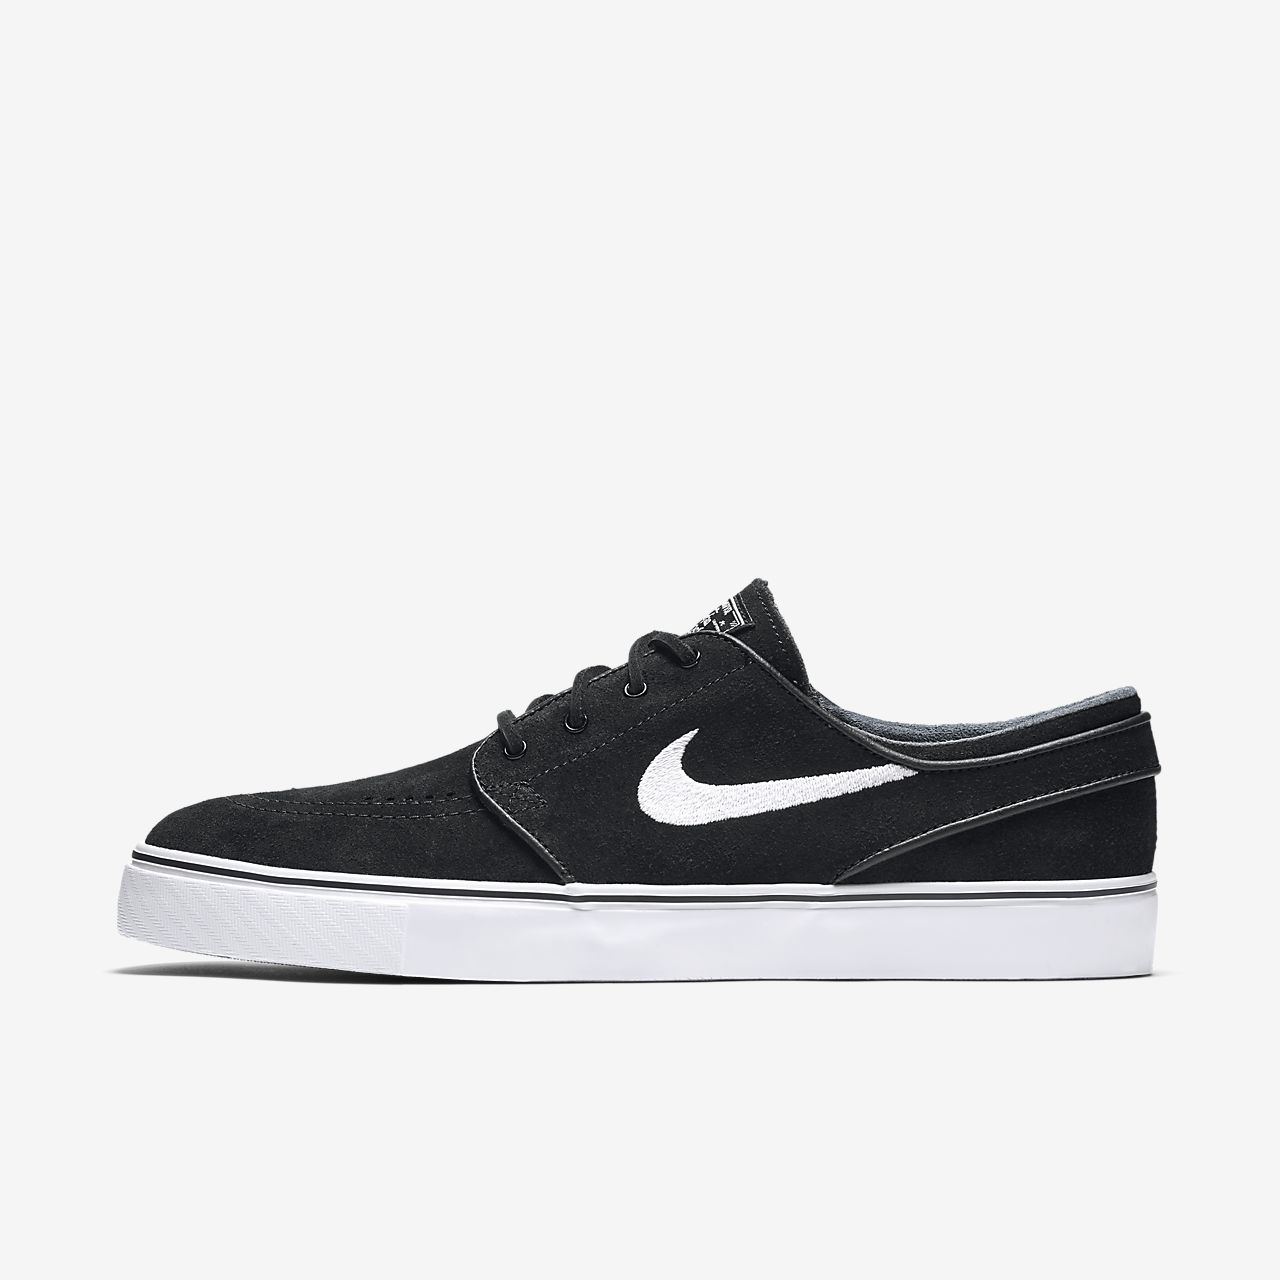 low priced b1c23 fdd30 Nike SB Zoom Stefan Janoski OG